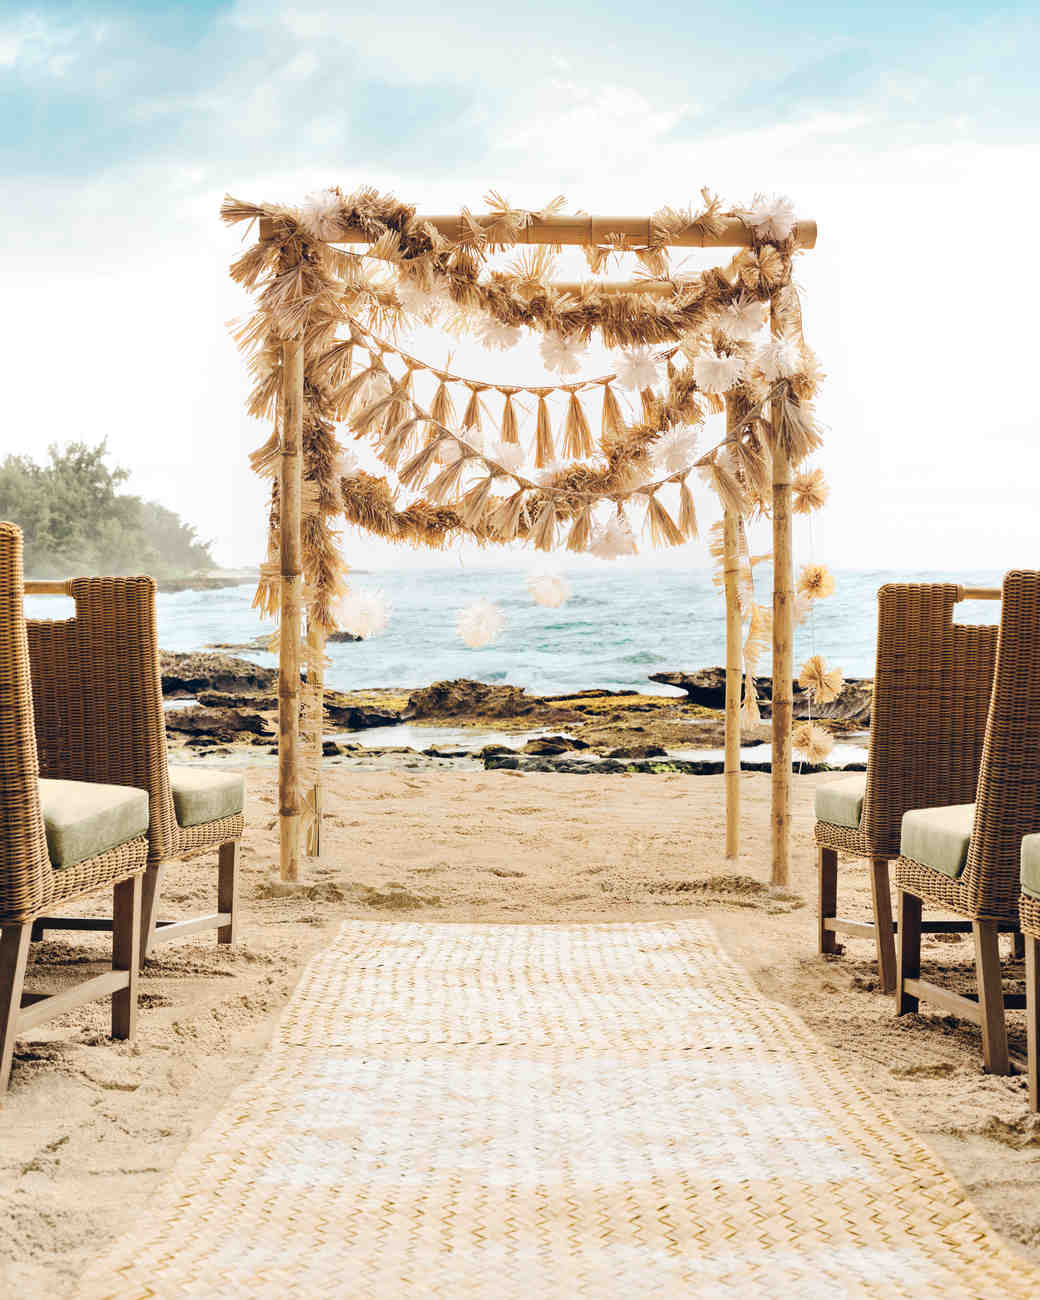 Night Beach Wedding Ceremony Ideas: 23 Beach Wedding Ideas You Can DIY To Make A Splash At